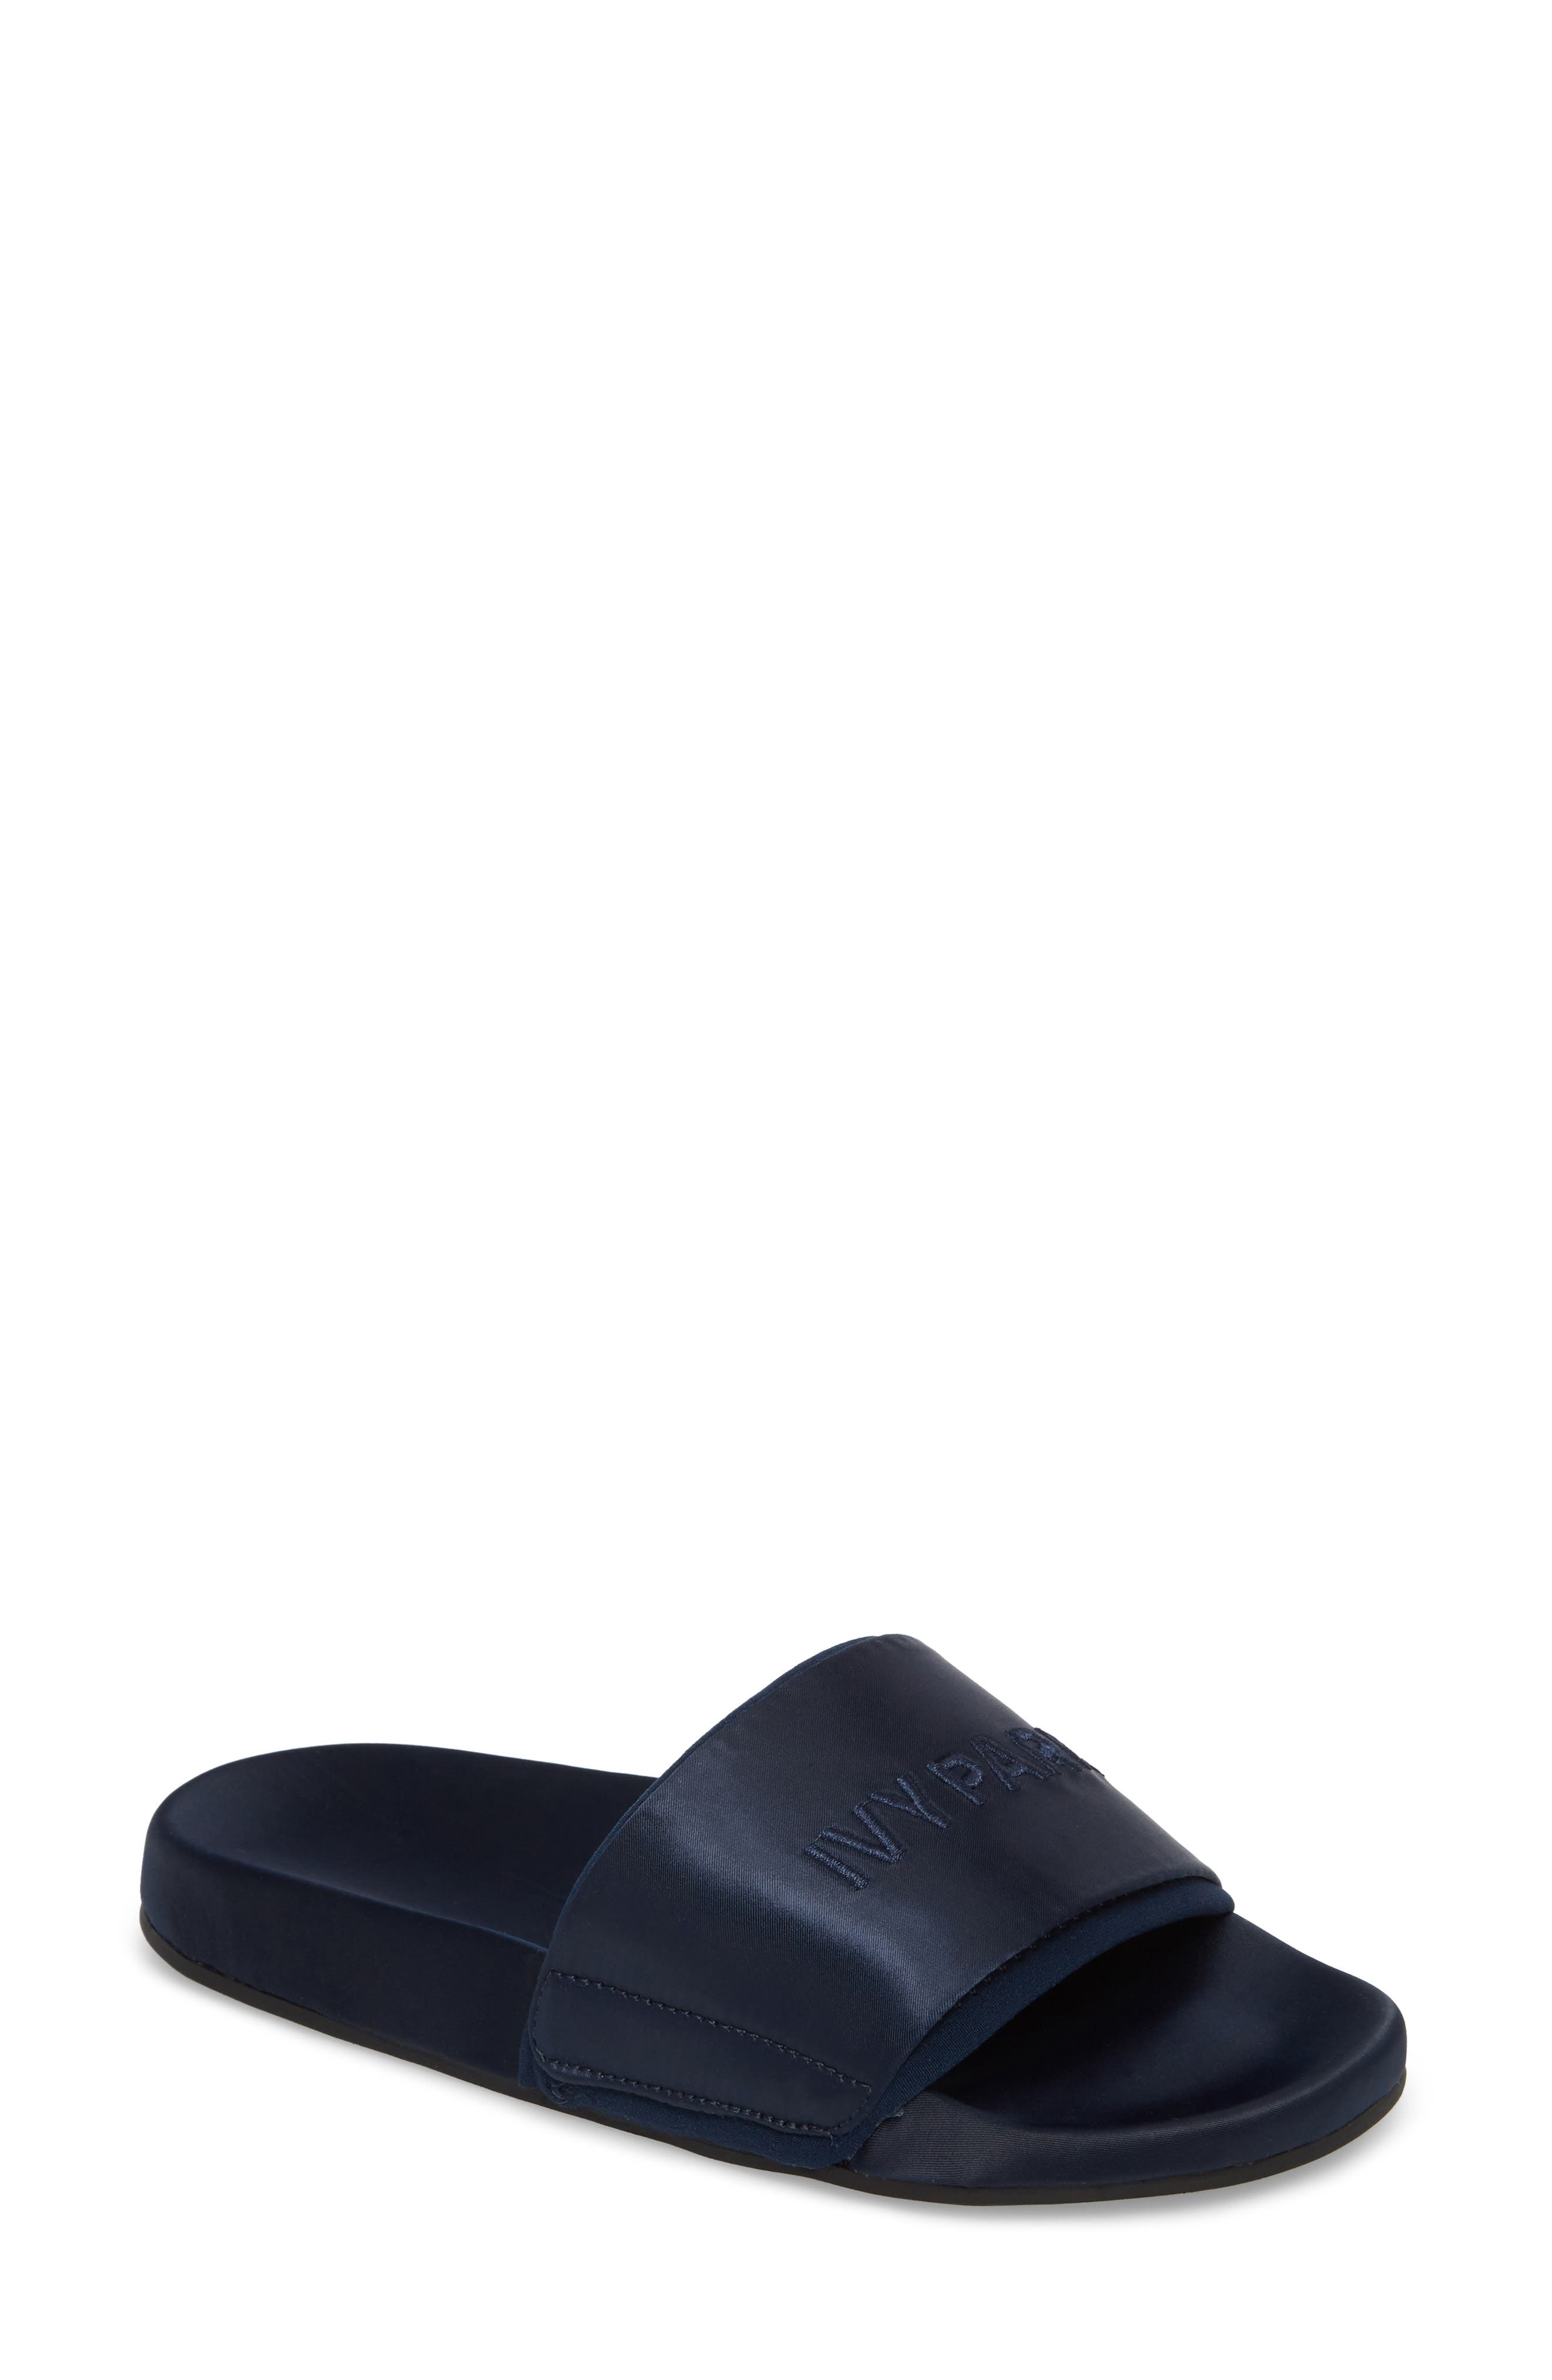 IVY PARK® High Shine Slide (Women)